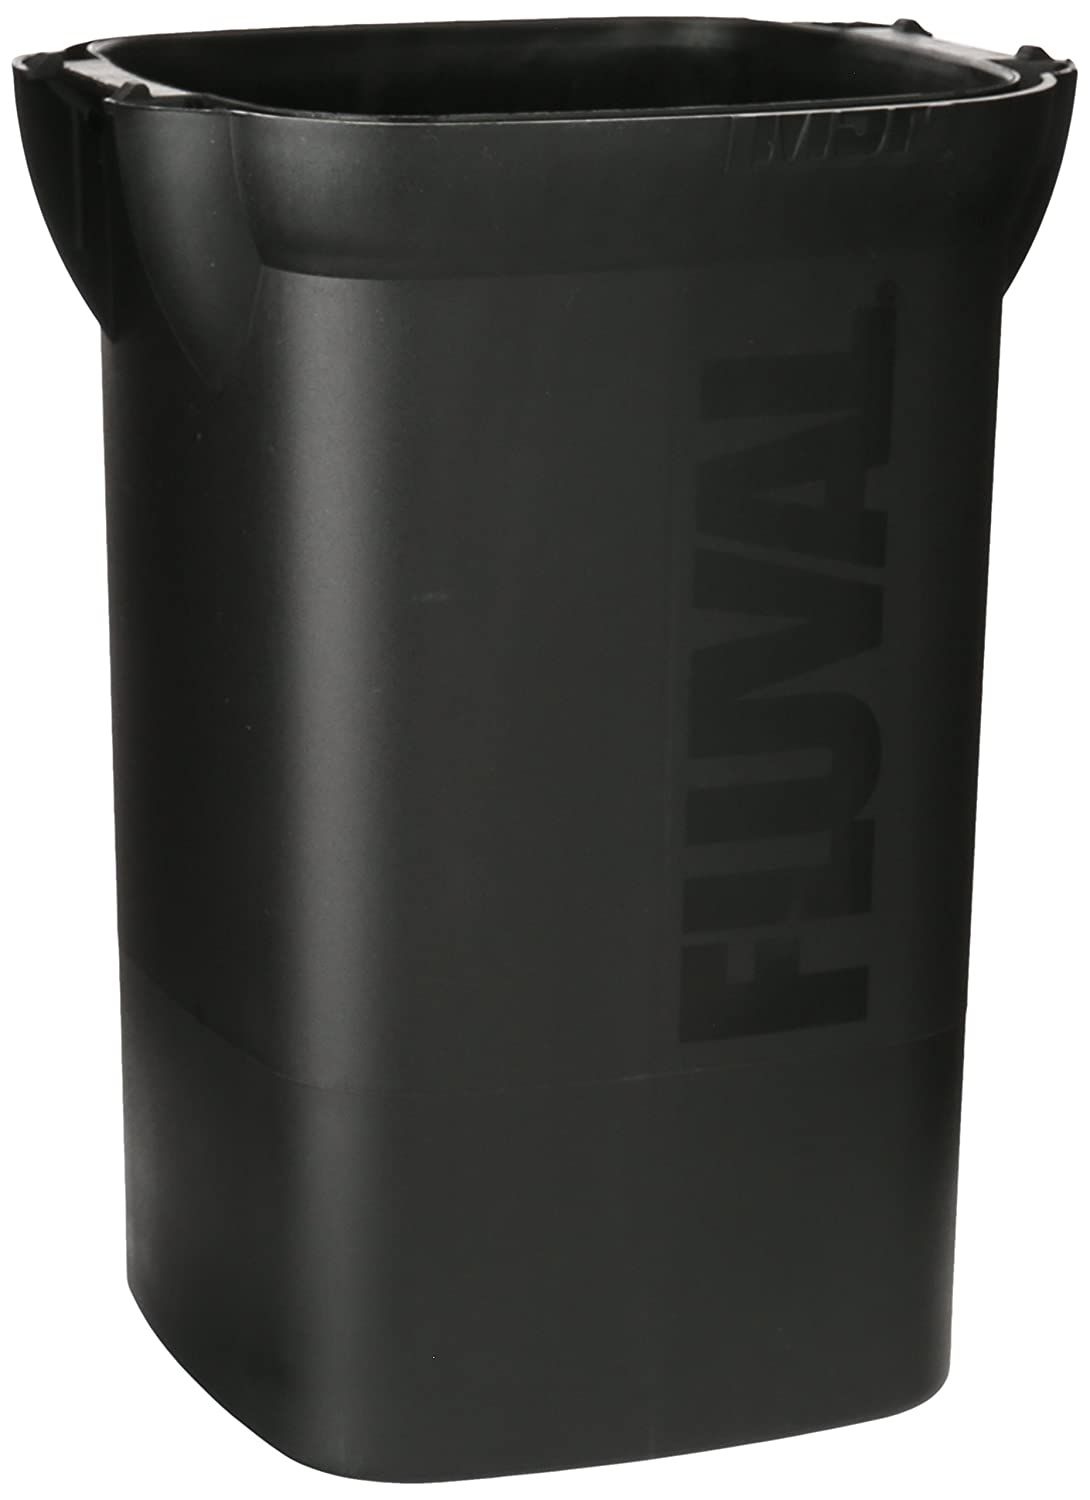 Fluval MSF Filter Case for Canister Filter, 6-5 7 by 8 by 10-1 2-Inch